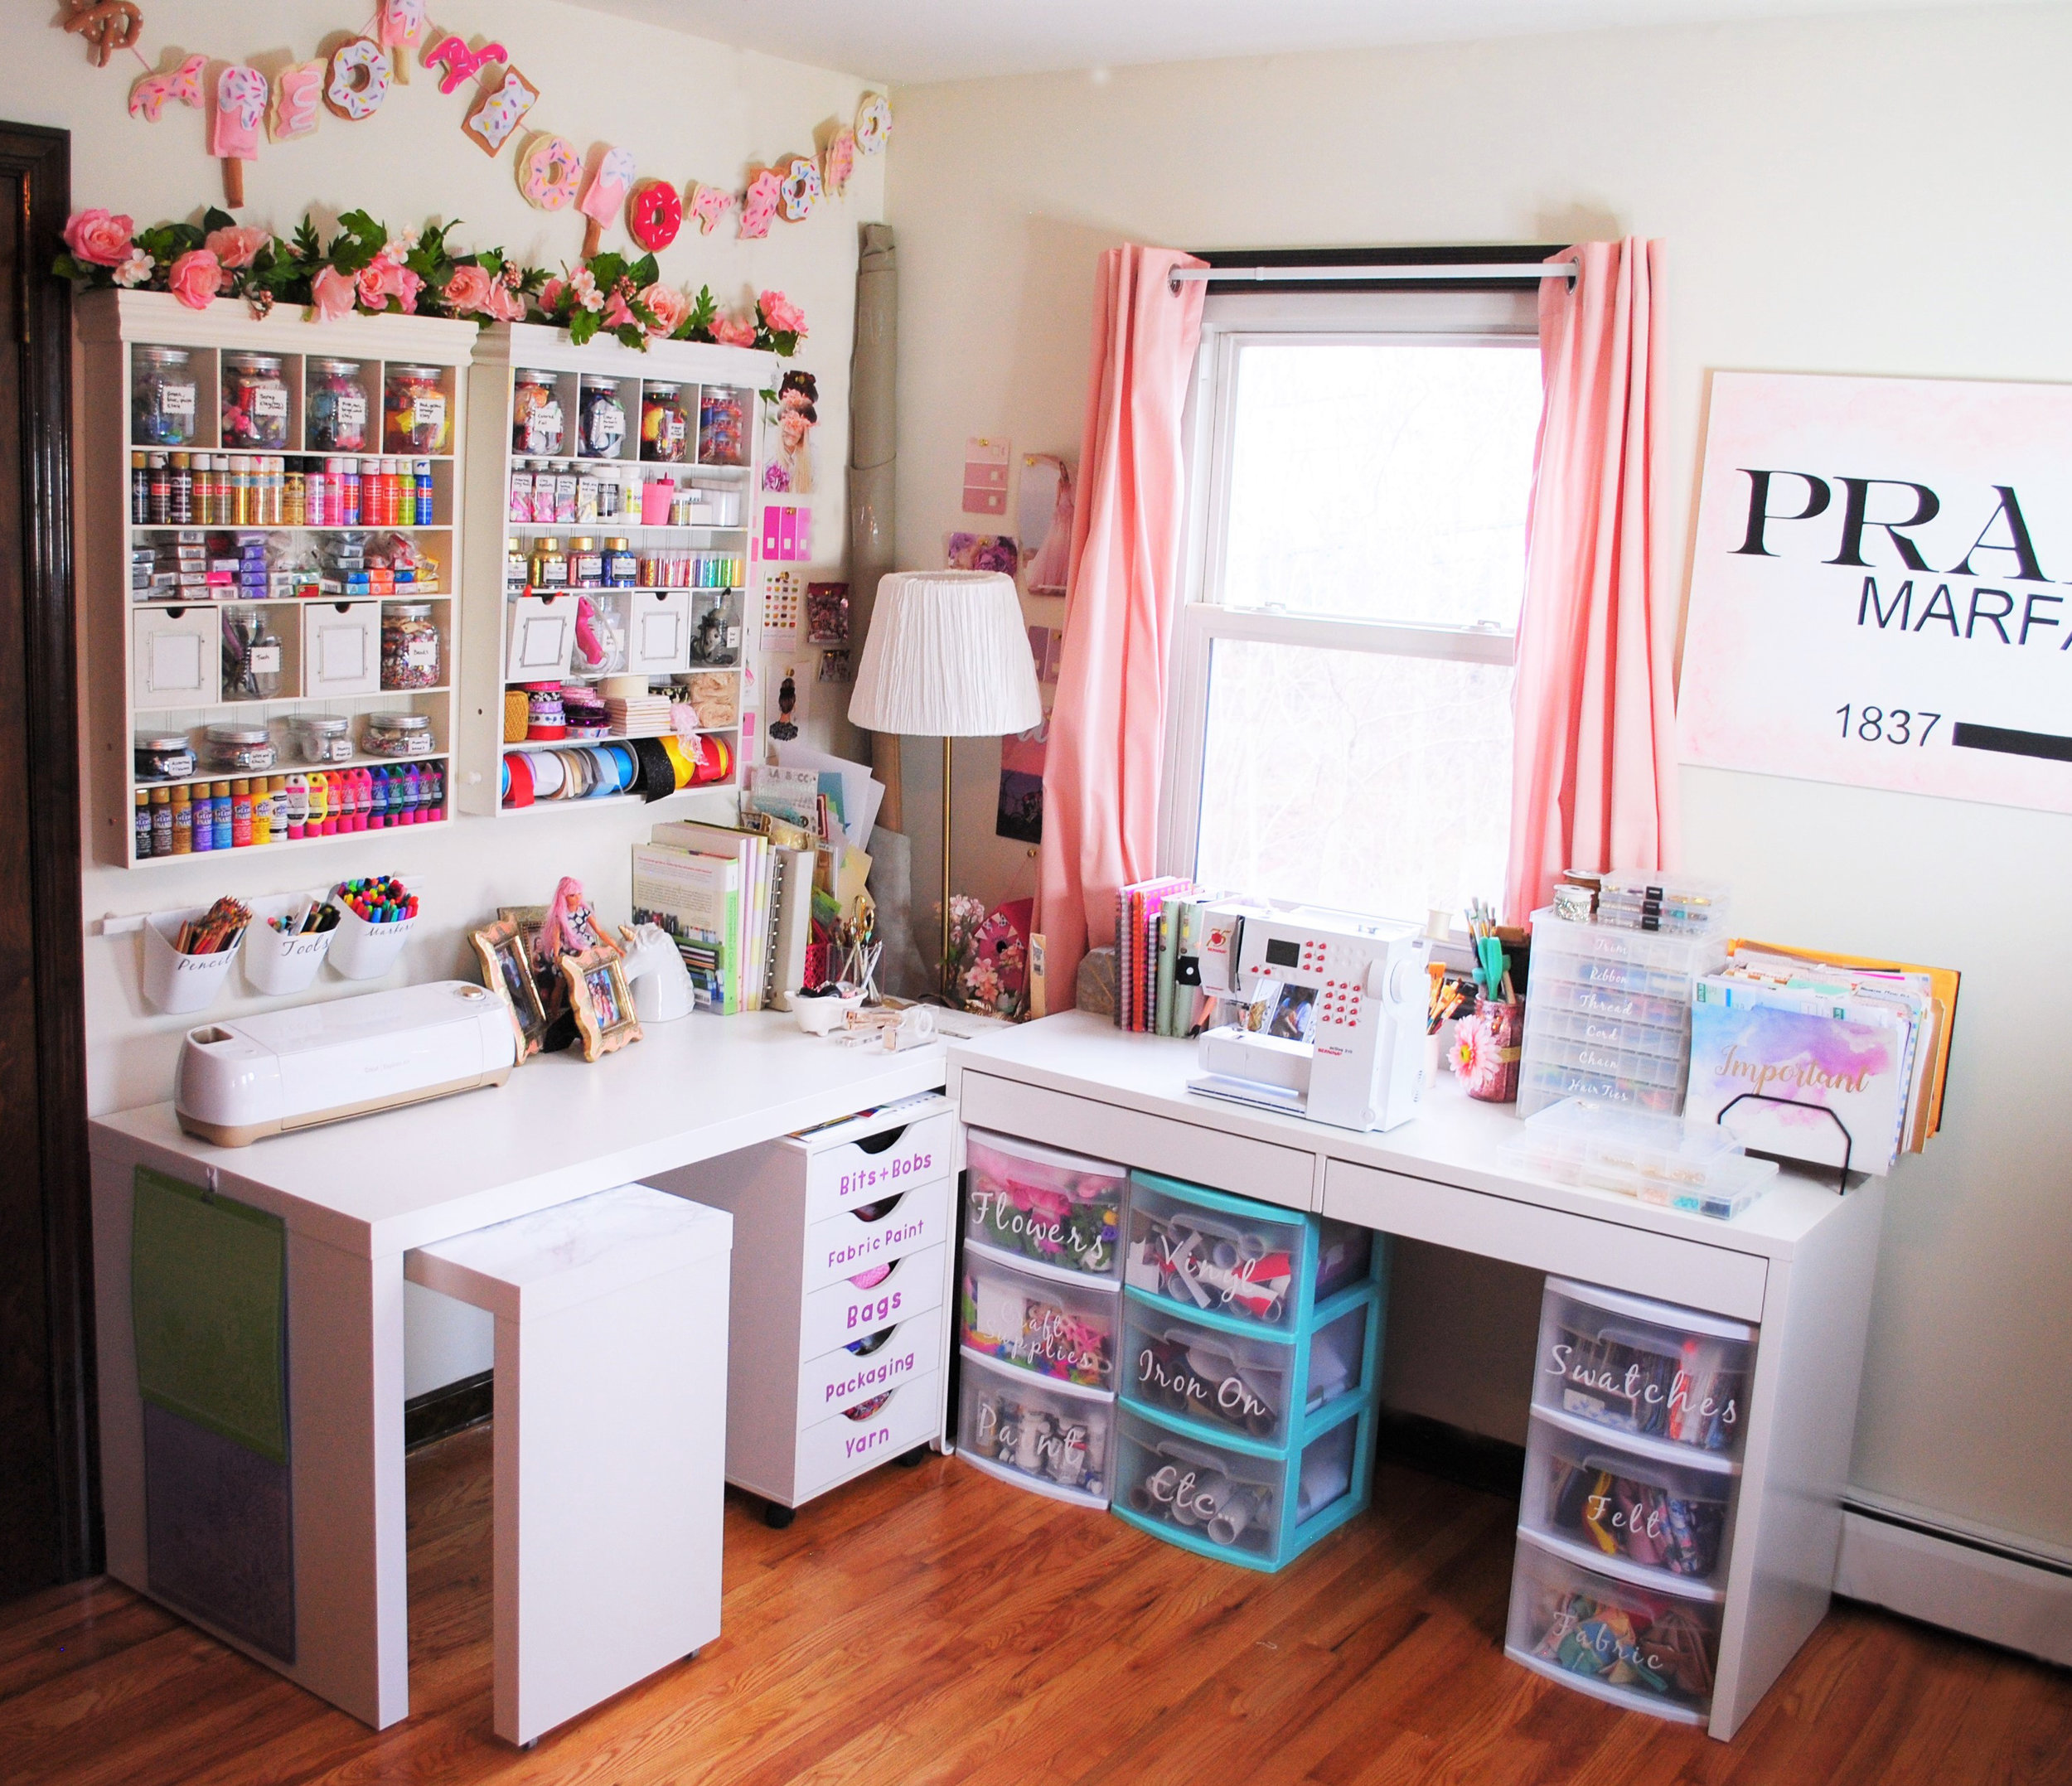 So there you have it, - the official tour of my craft room! I have really poured my heart and soul into creating this area where I can embrace every crazy idea that pops into my head, so I really hope you enjoyed seeing all of the fun little details in this post.